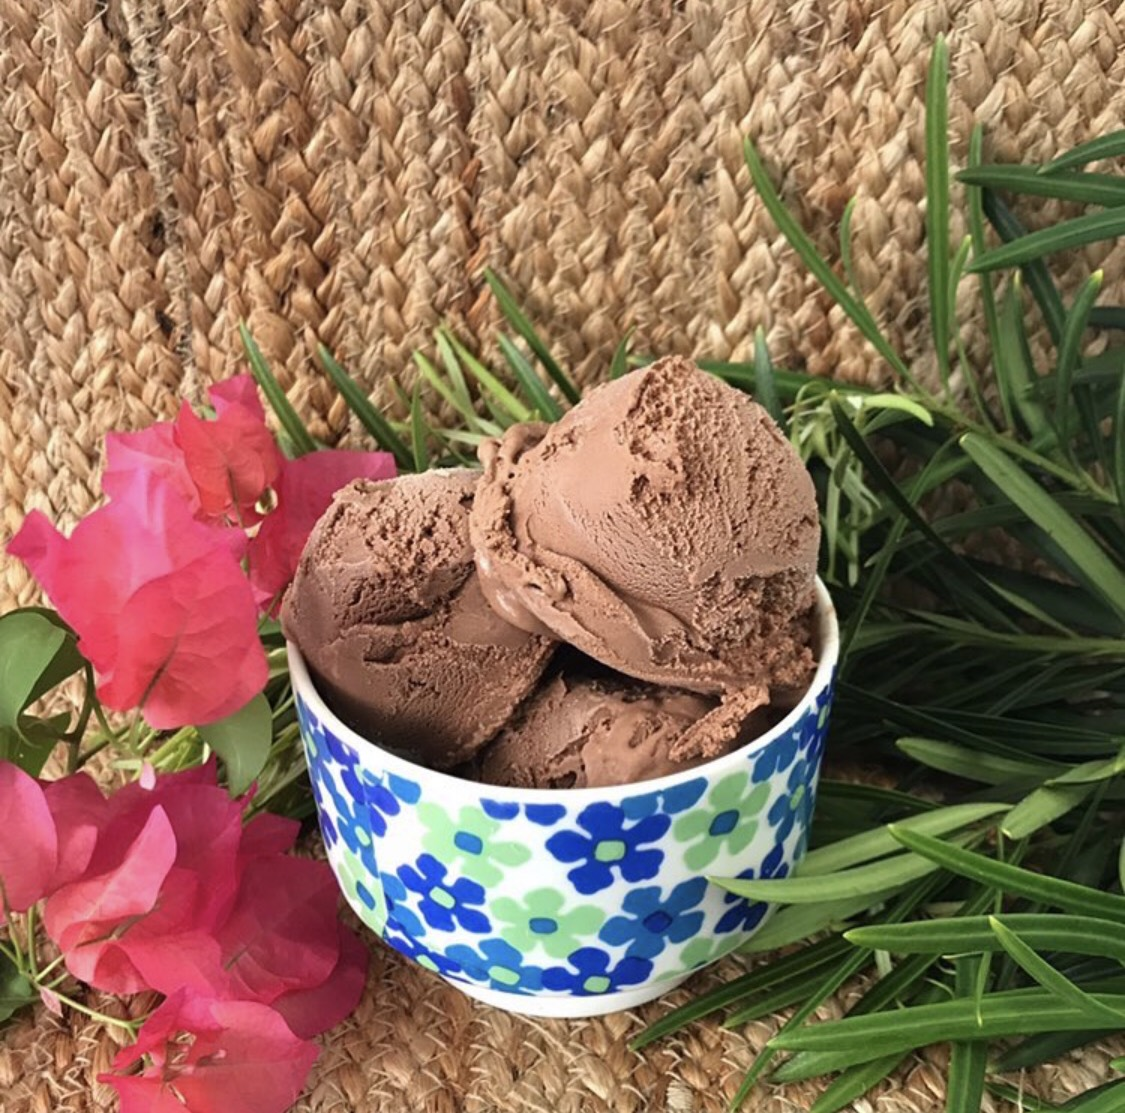 one of Plant+Love's classic flavors, Divine Chocolate.